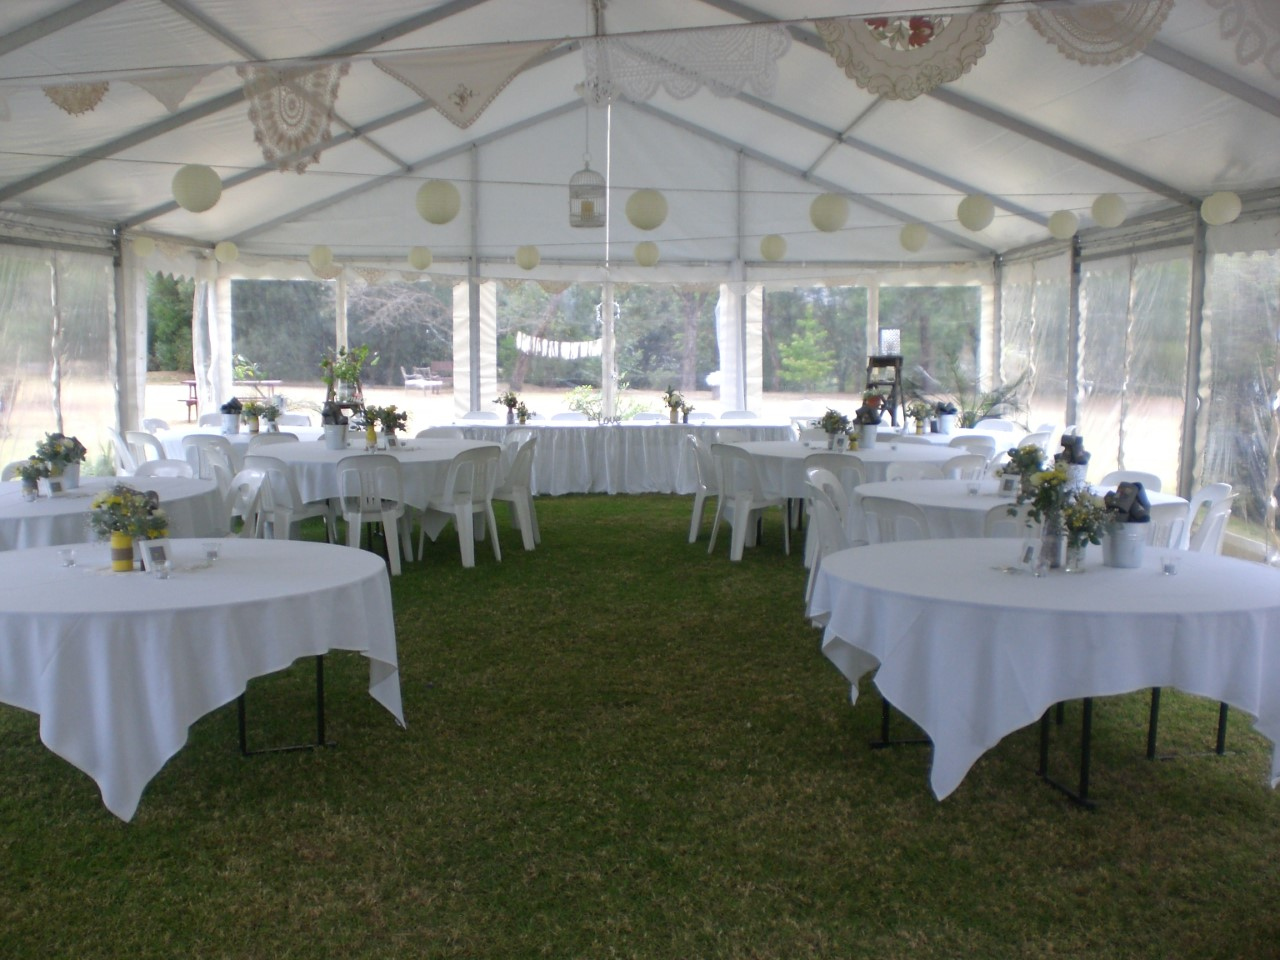 Wedding Marquee 9m x 12m